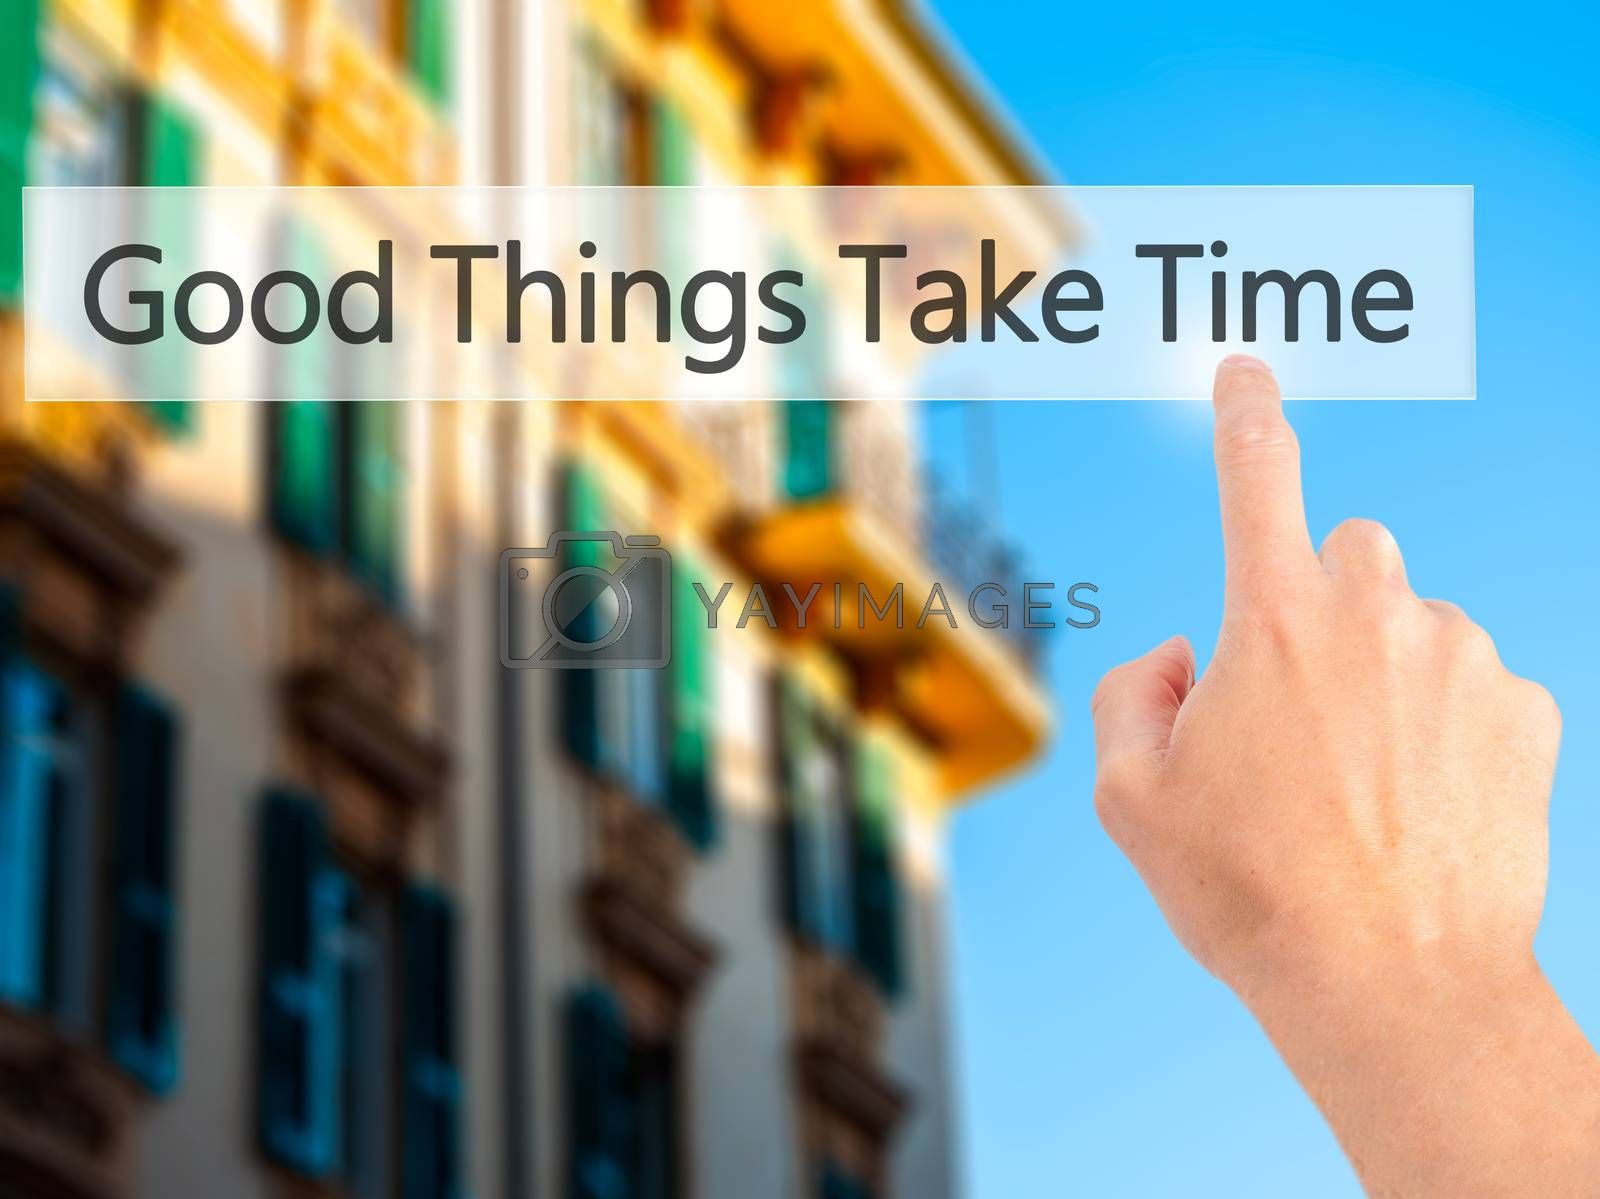 Good Things Take Time - Hand pressing a button on blurred backgr by netsay.net